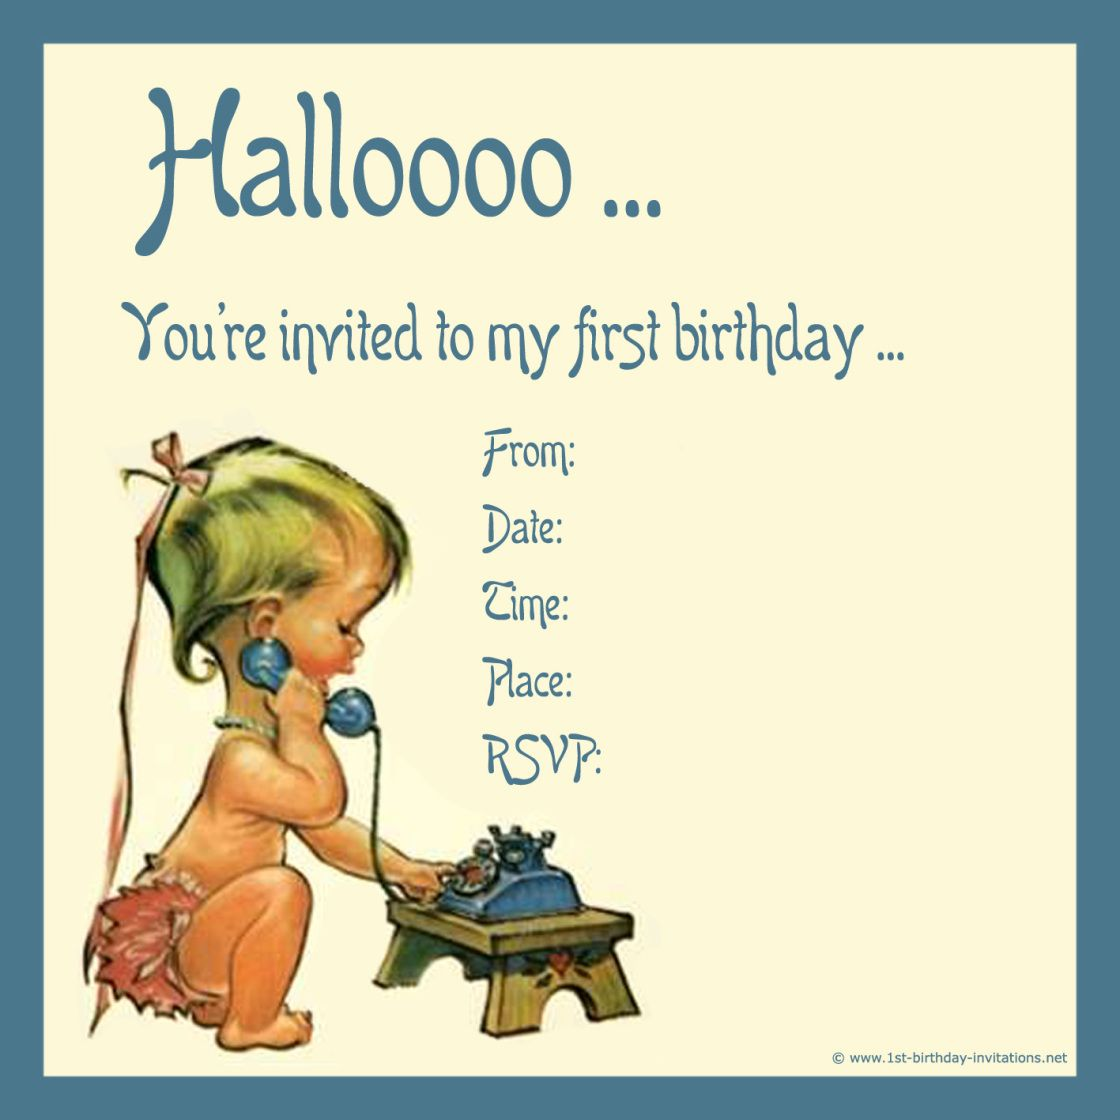 Greetings cards th birthday messages friend sayings online card greetings cards th birthday messages friend sayings online card coffee greeting mugs old for friends vintage bookmarktalkfo Images